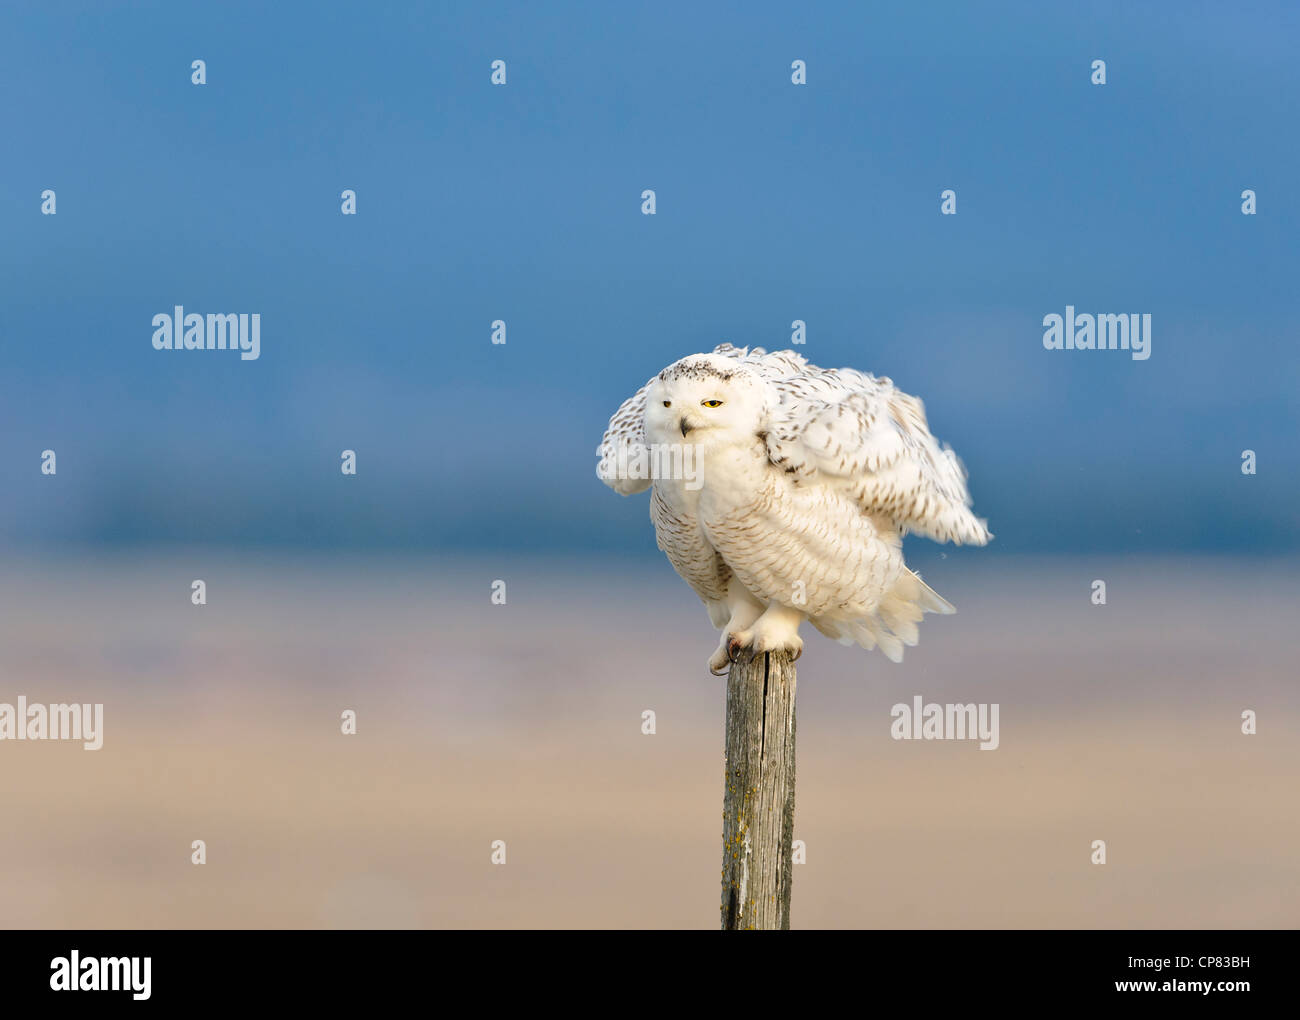 A snowy owl fluffs up his feathers while perched on a wooden fencepost, Polson, Montana - Stock Image